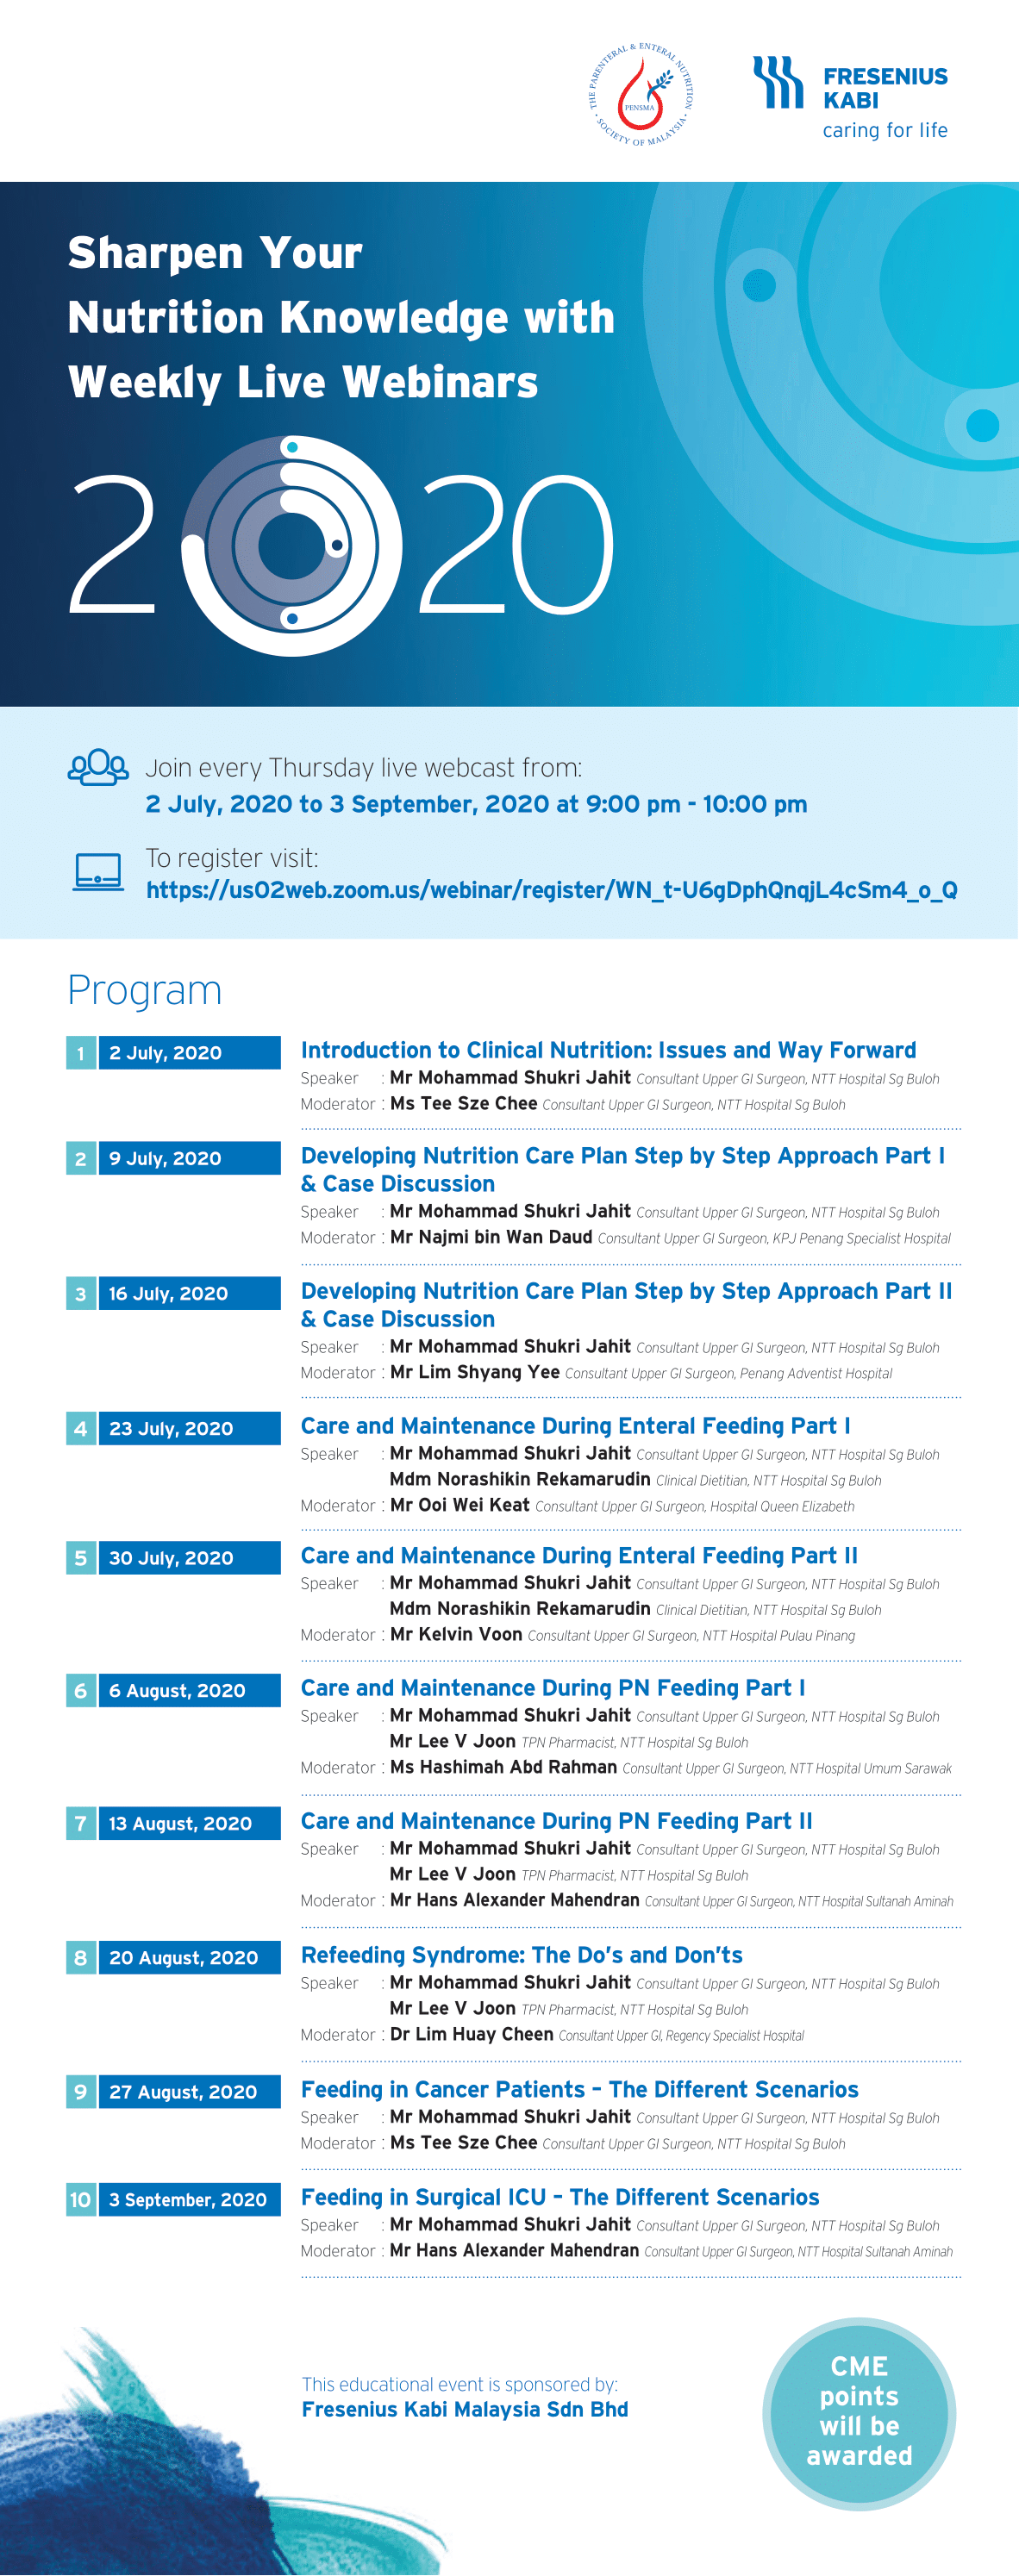 2020 Weekly Live Webinars Flyer